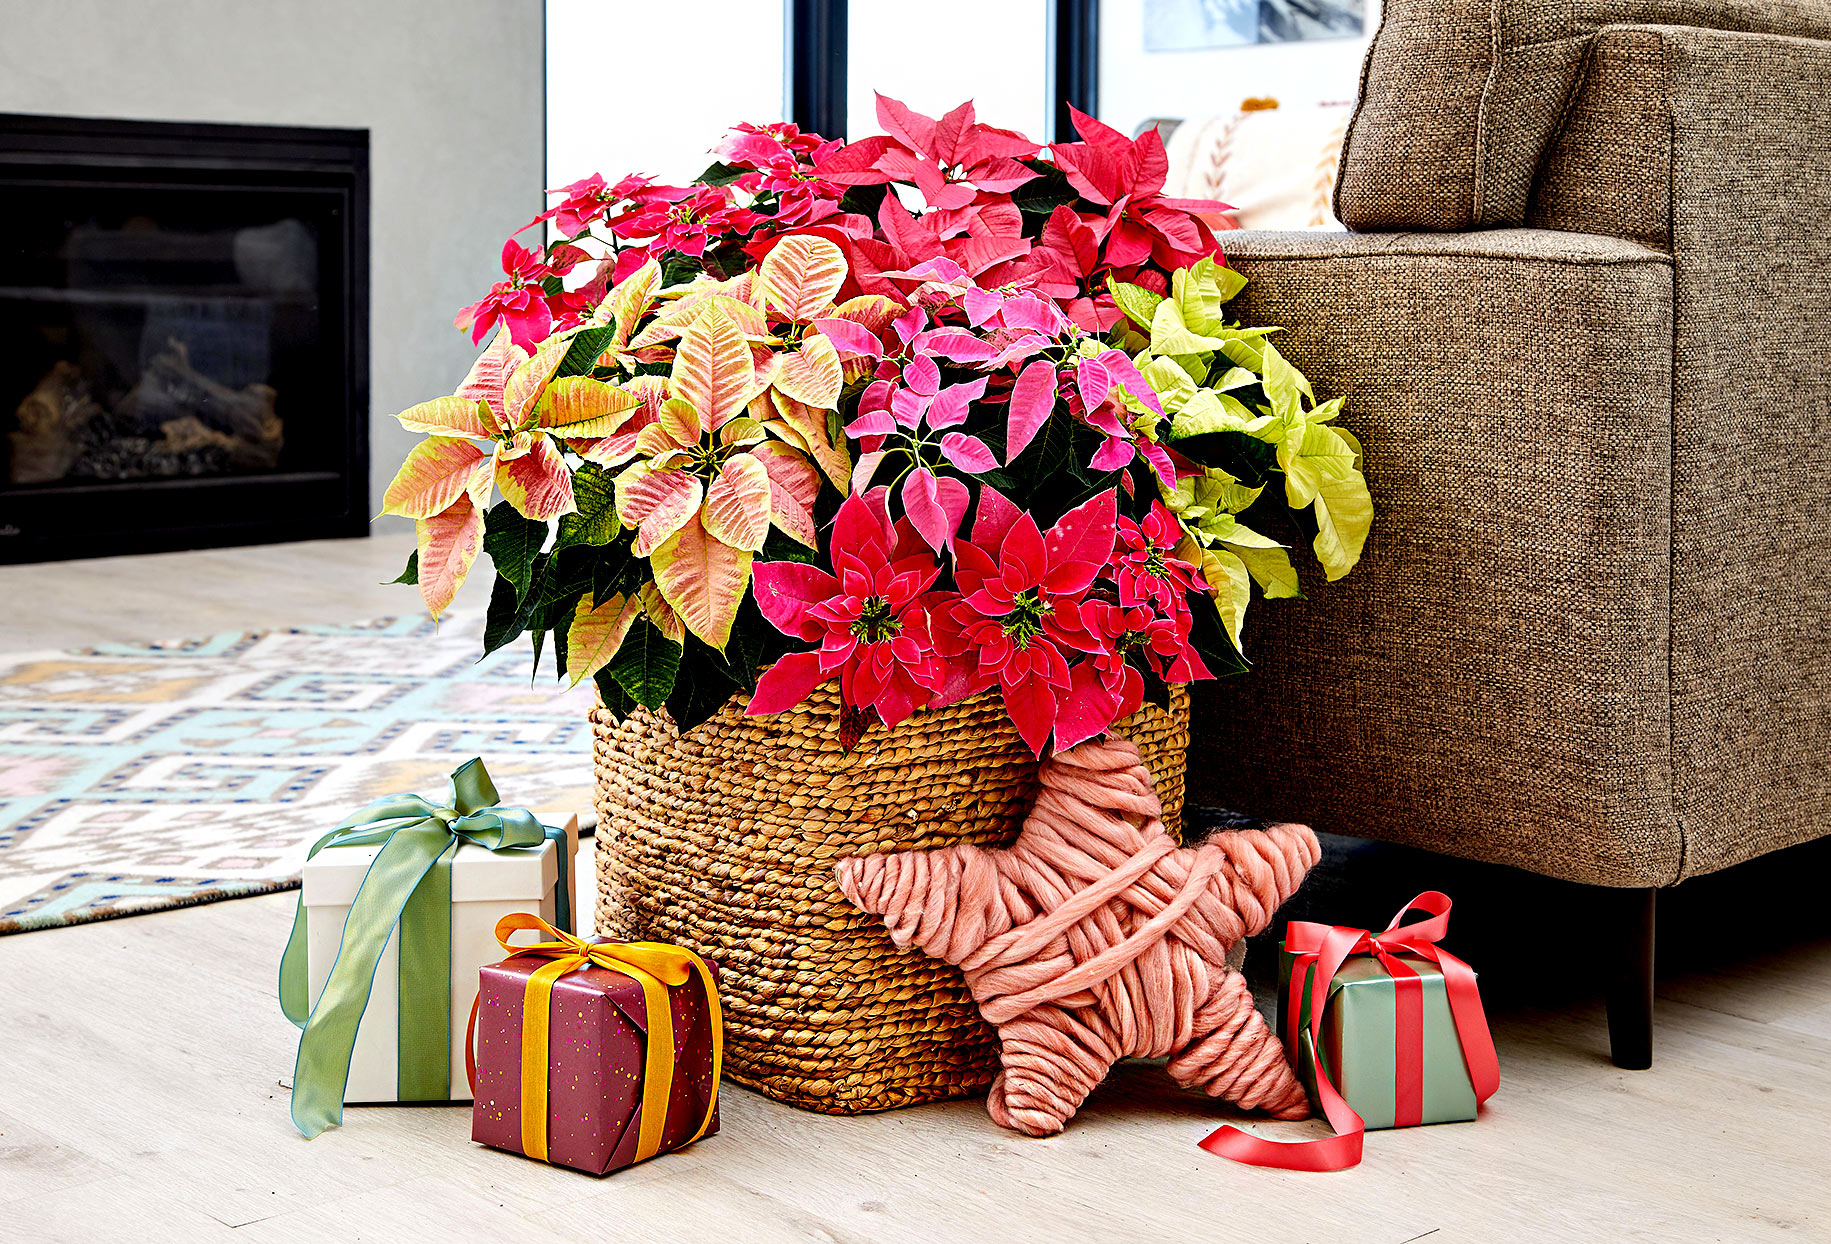 Large wicker basket with poinsettias